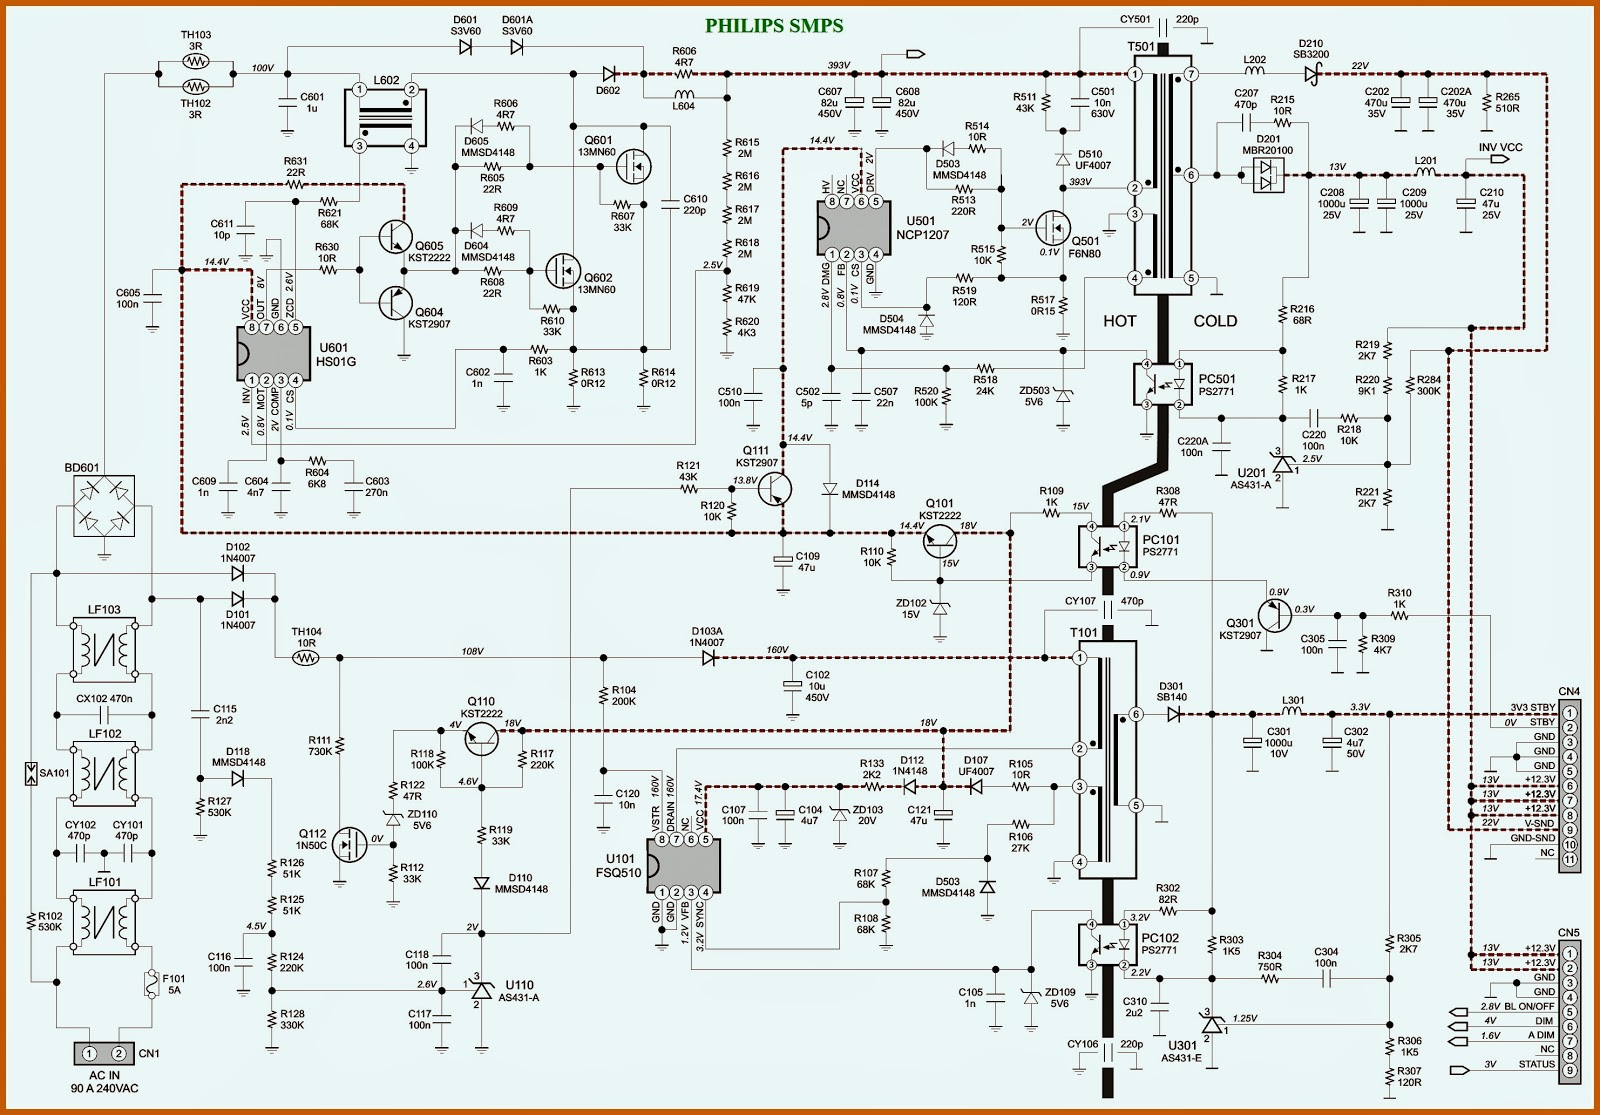 Oven Wiring Schematic Another Blog About Diagram Of Star Delta Starter With Timer Electro Help Philips 40pfl3606 Lcd Tv Power Supply Instructions Thermador